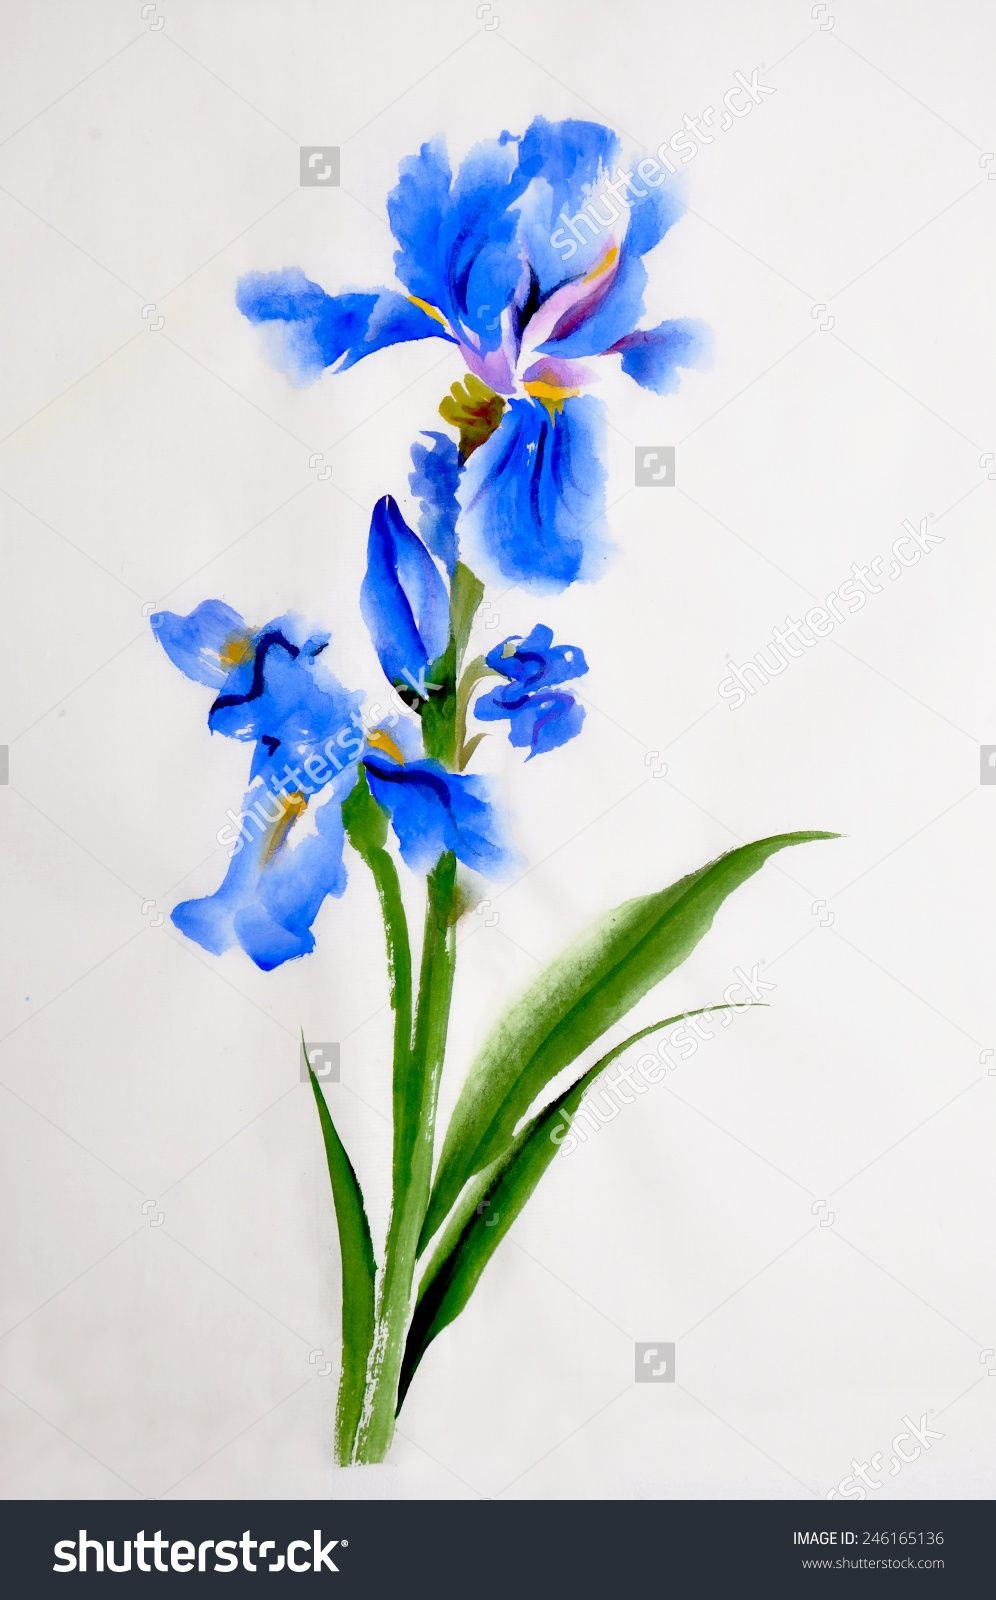 Pin by alina klainer on blue iris pinterest iris tattoo and find japanese iris flower stock images in hd and millions of other royalty free stock photos illustrations and vectors in the shutterstock collection izmirmasajfo